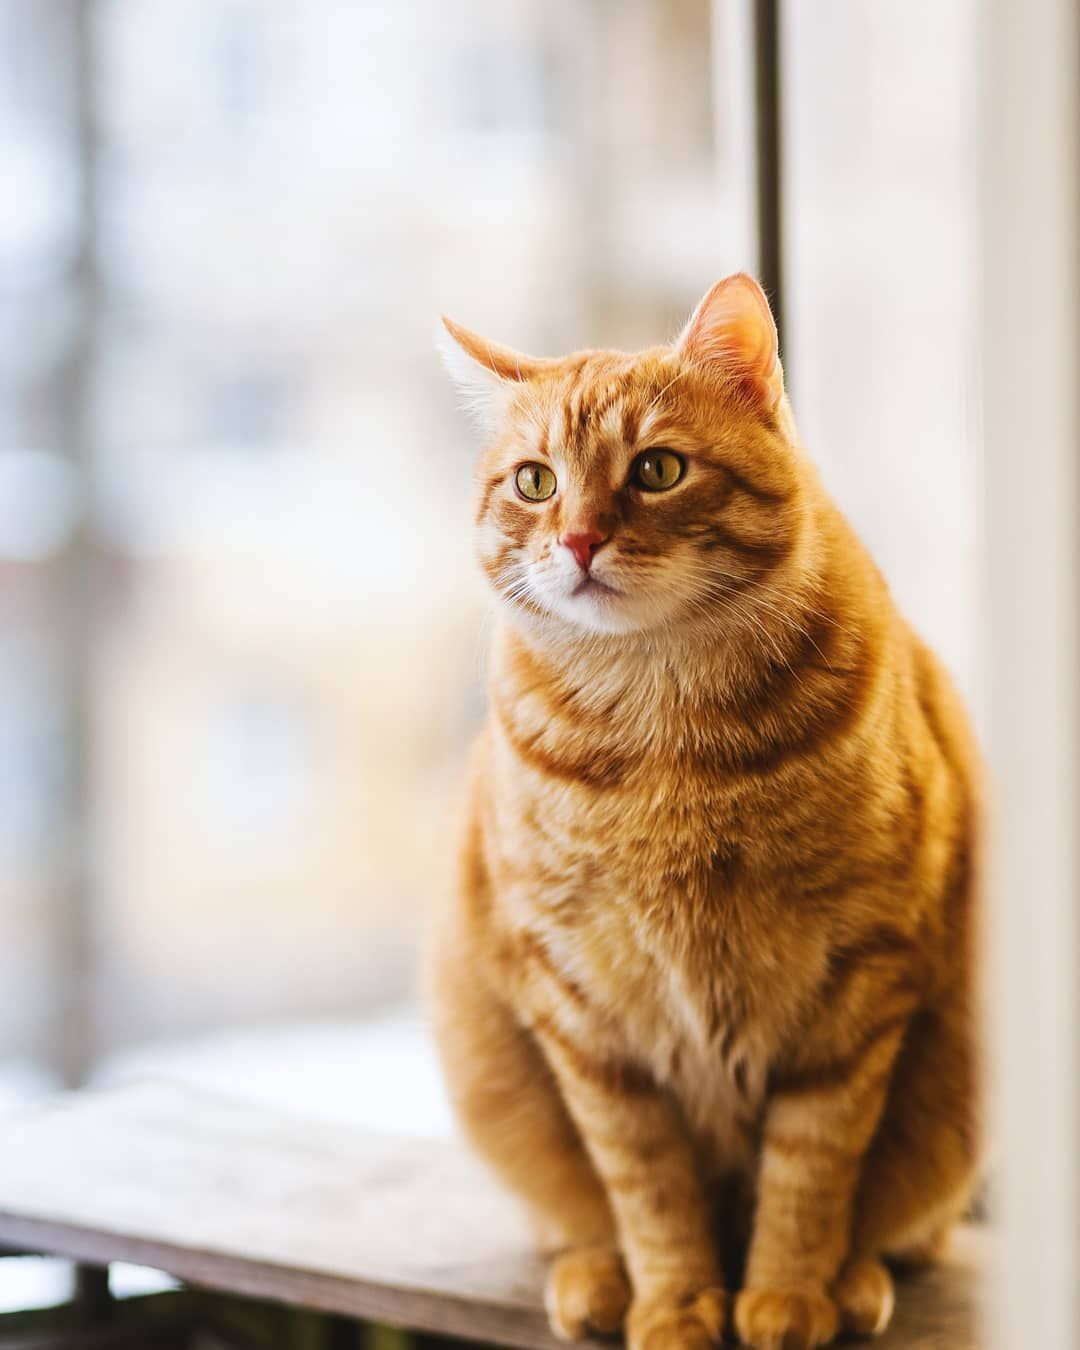 Top 10 Most Beautiful Cat Breeds In The World In 2020 Orange Tabby Cats Cute Cats Photos Tabby Cat